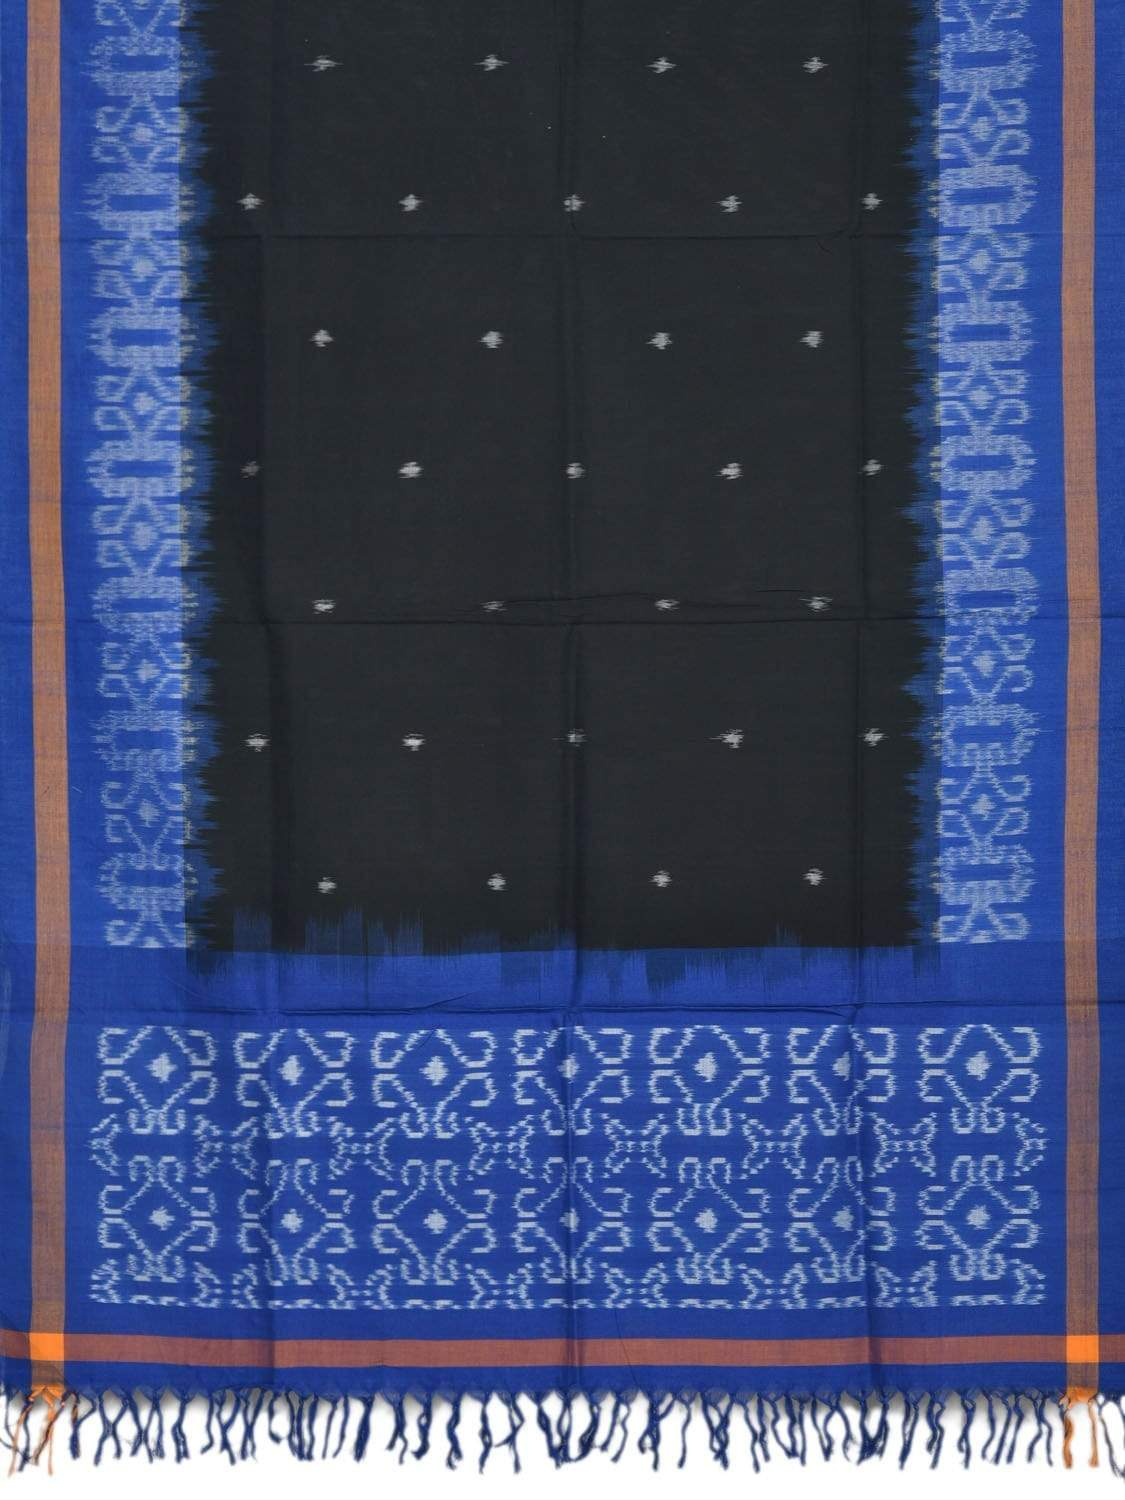 Blue and Black Pochampally Ikat Cotton Handloom Dupatta with Border Design ds1877